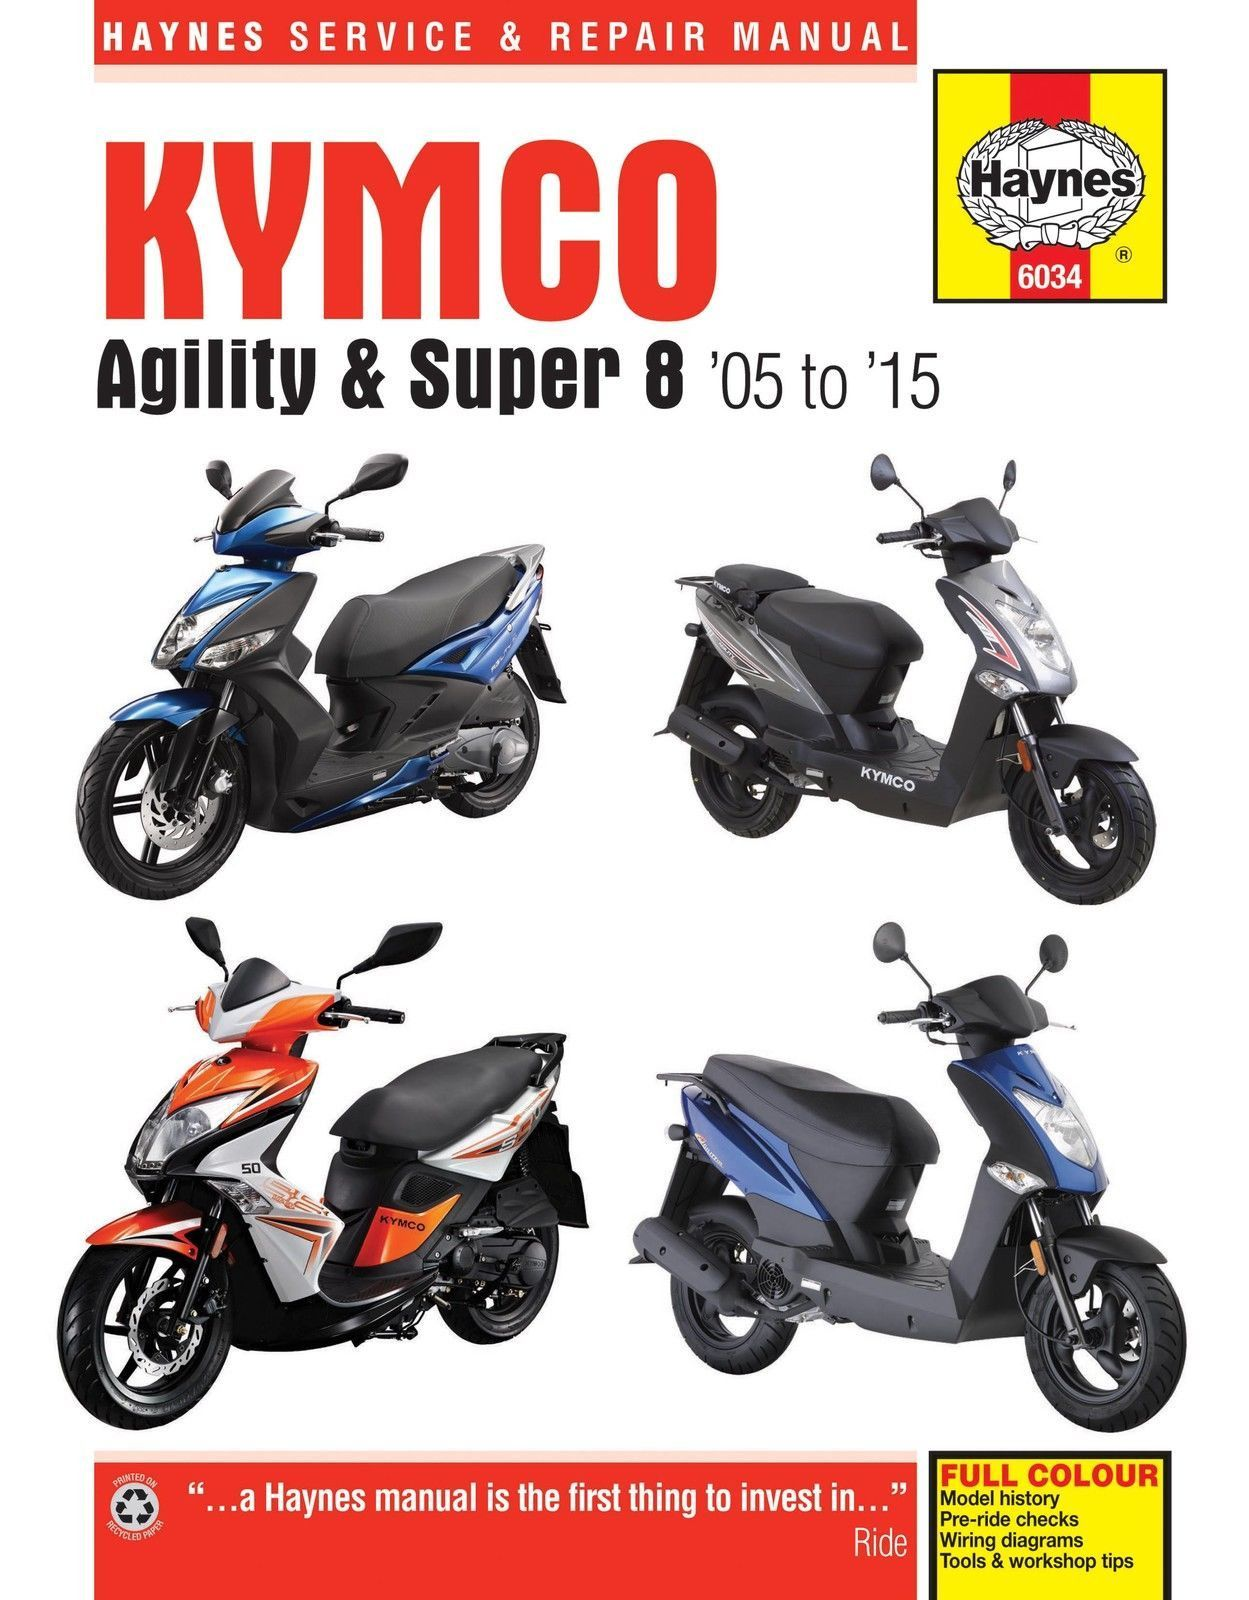 haynes kymco scooter service manual 6034 agility super 8 2005 rh pinterest co uk kymco super 8 mobility scooter user manual Super 8 Kymco 50Cc